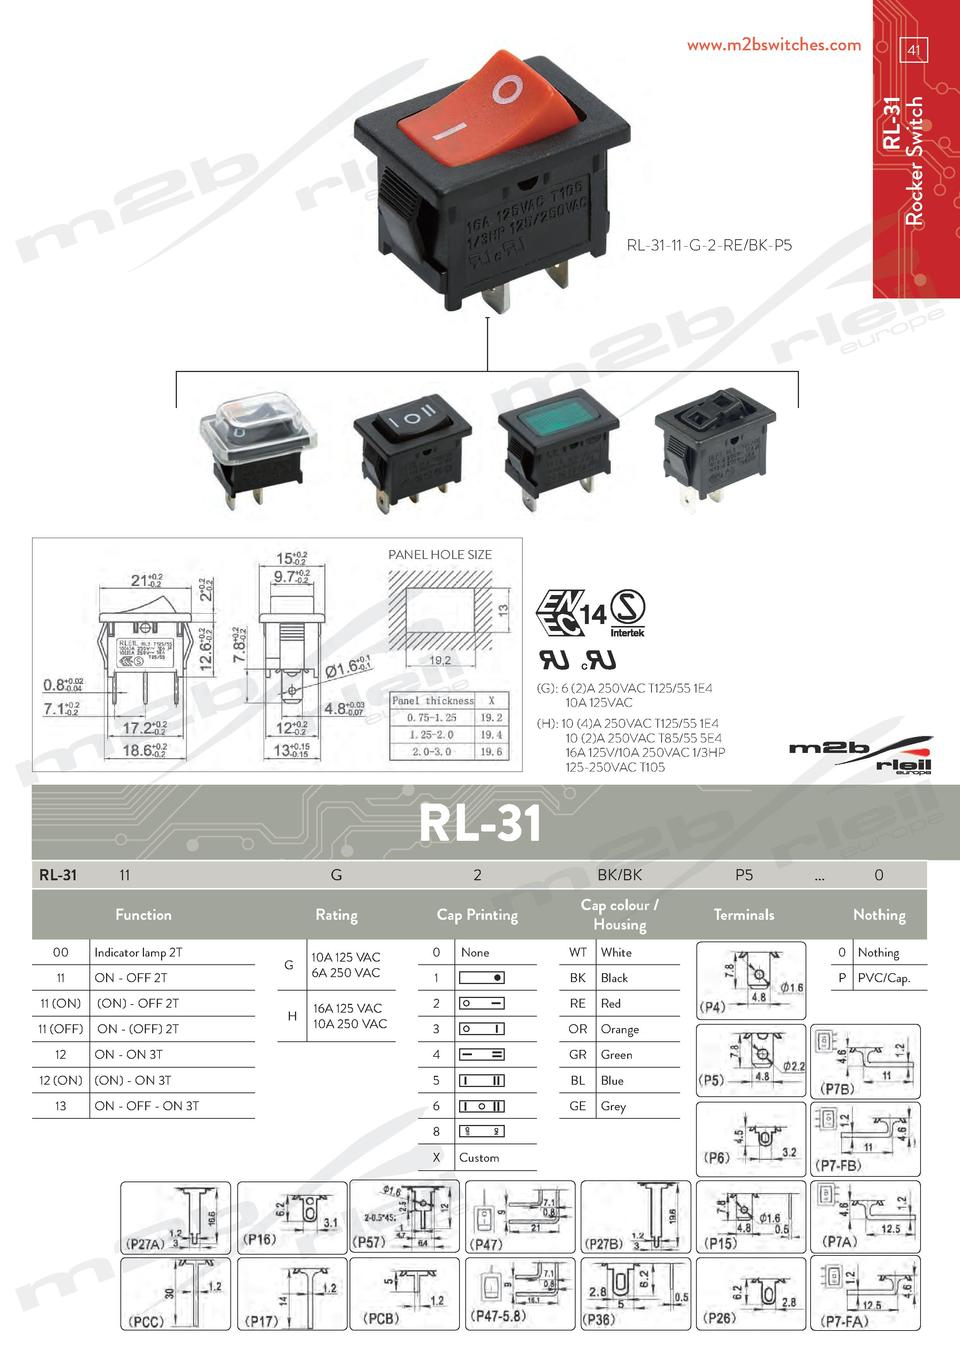 www.m2bswitches.com  RL-31 Rocker Switch  41  RL-31-11-G-2-RE BK-P5  PANEL HOLE SIZE   G   6  2 A 250VAC T125 55 1E4   10A...